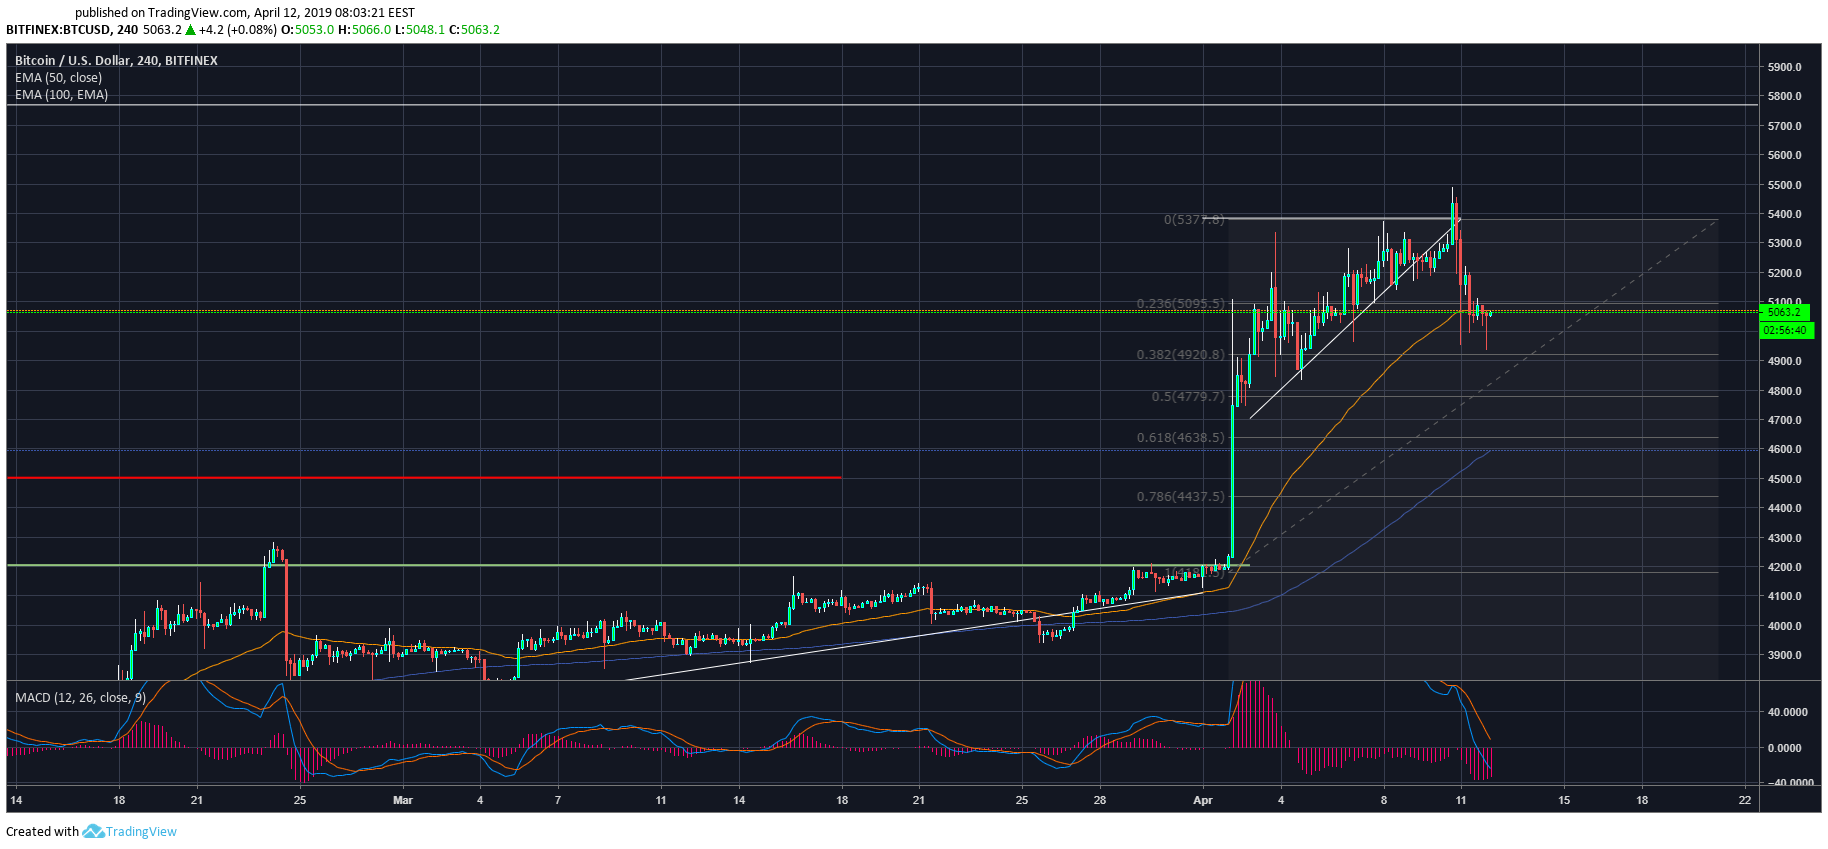 Crypto market in review: April 12